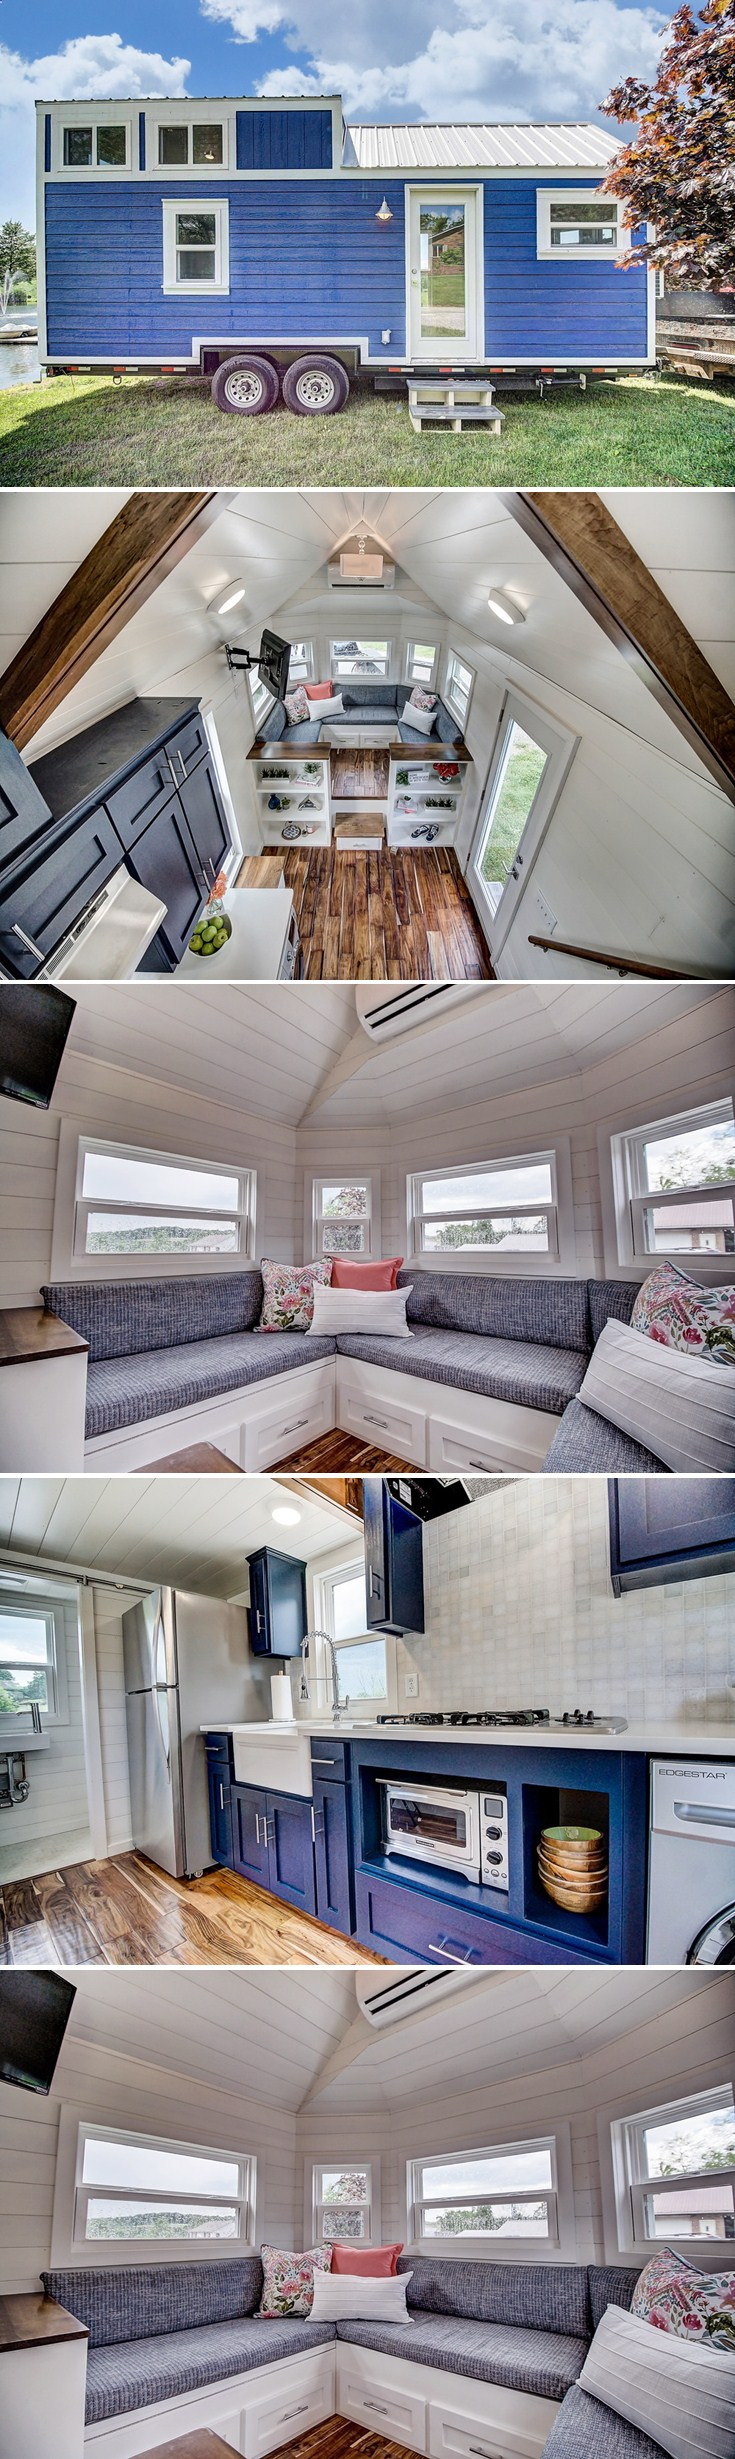 Modern storage area - Unique Idea For A Sitting Area W Tons Of Storage This Gorgeous Blue Nantucket Style Tiny House Was Built By Modern Tiny Living The Raised Platform Living